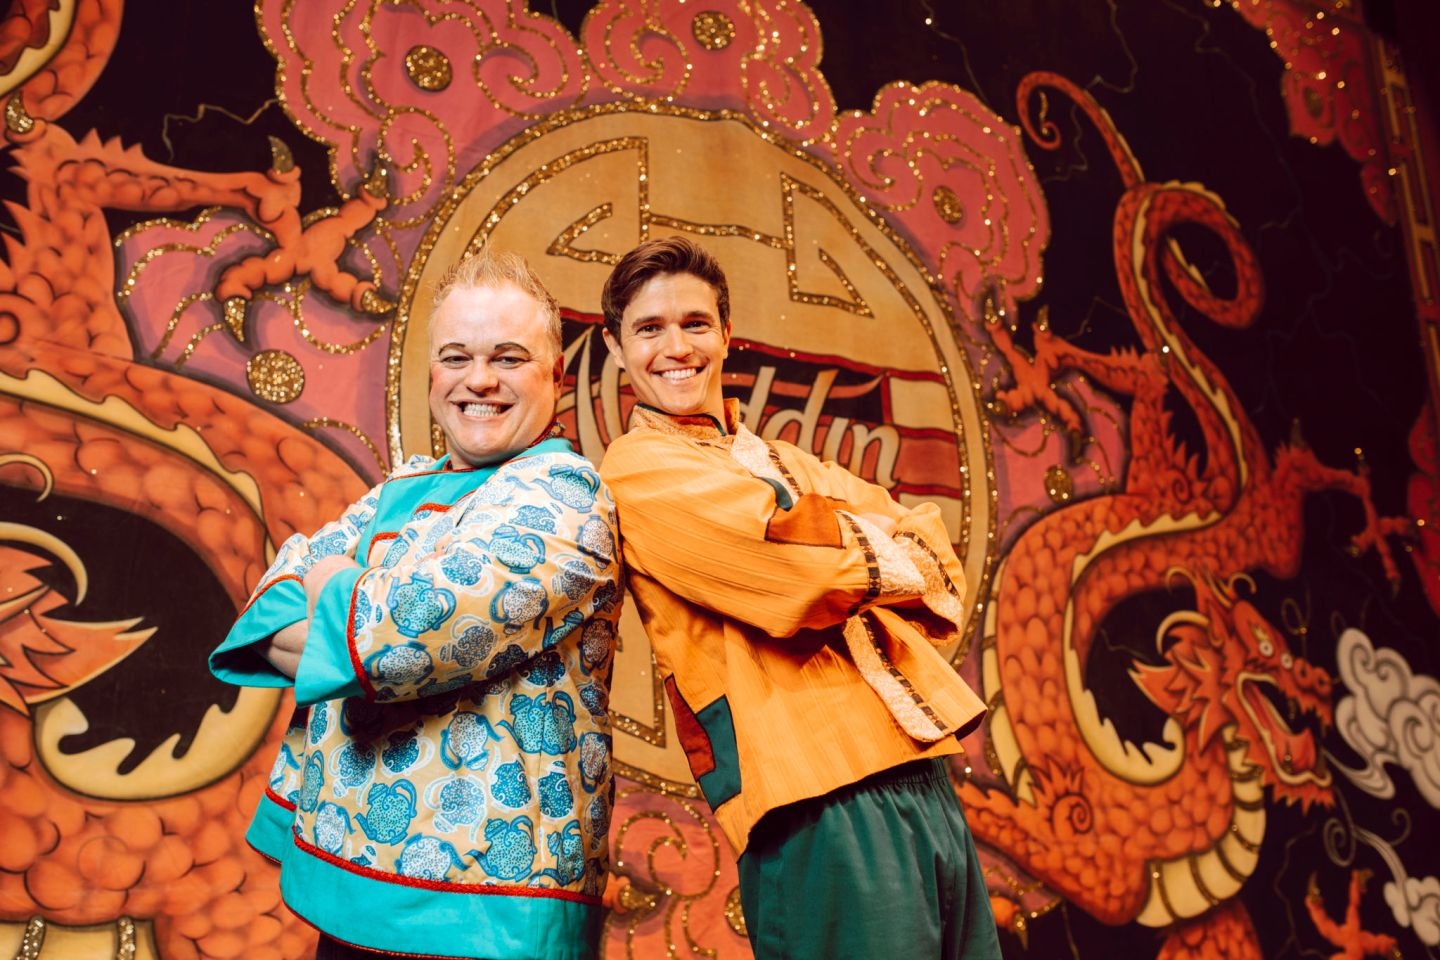 Charlie and Nic to camera 1440x960 - 3 Wishes with Aladdin at Tyne Theatre 2019